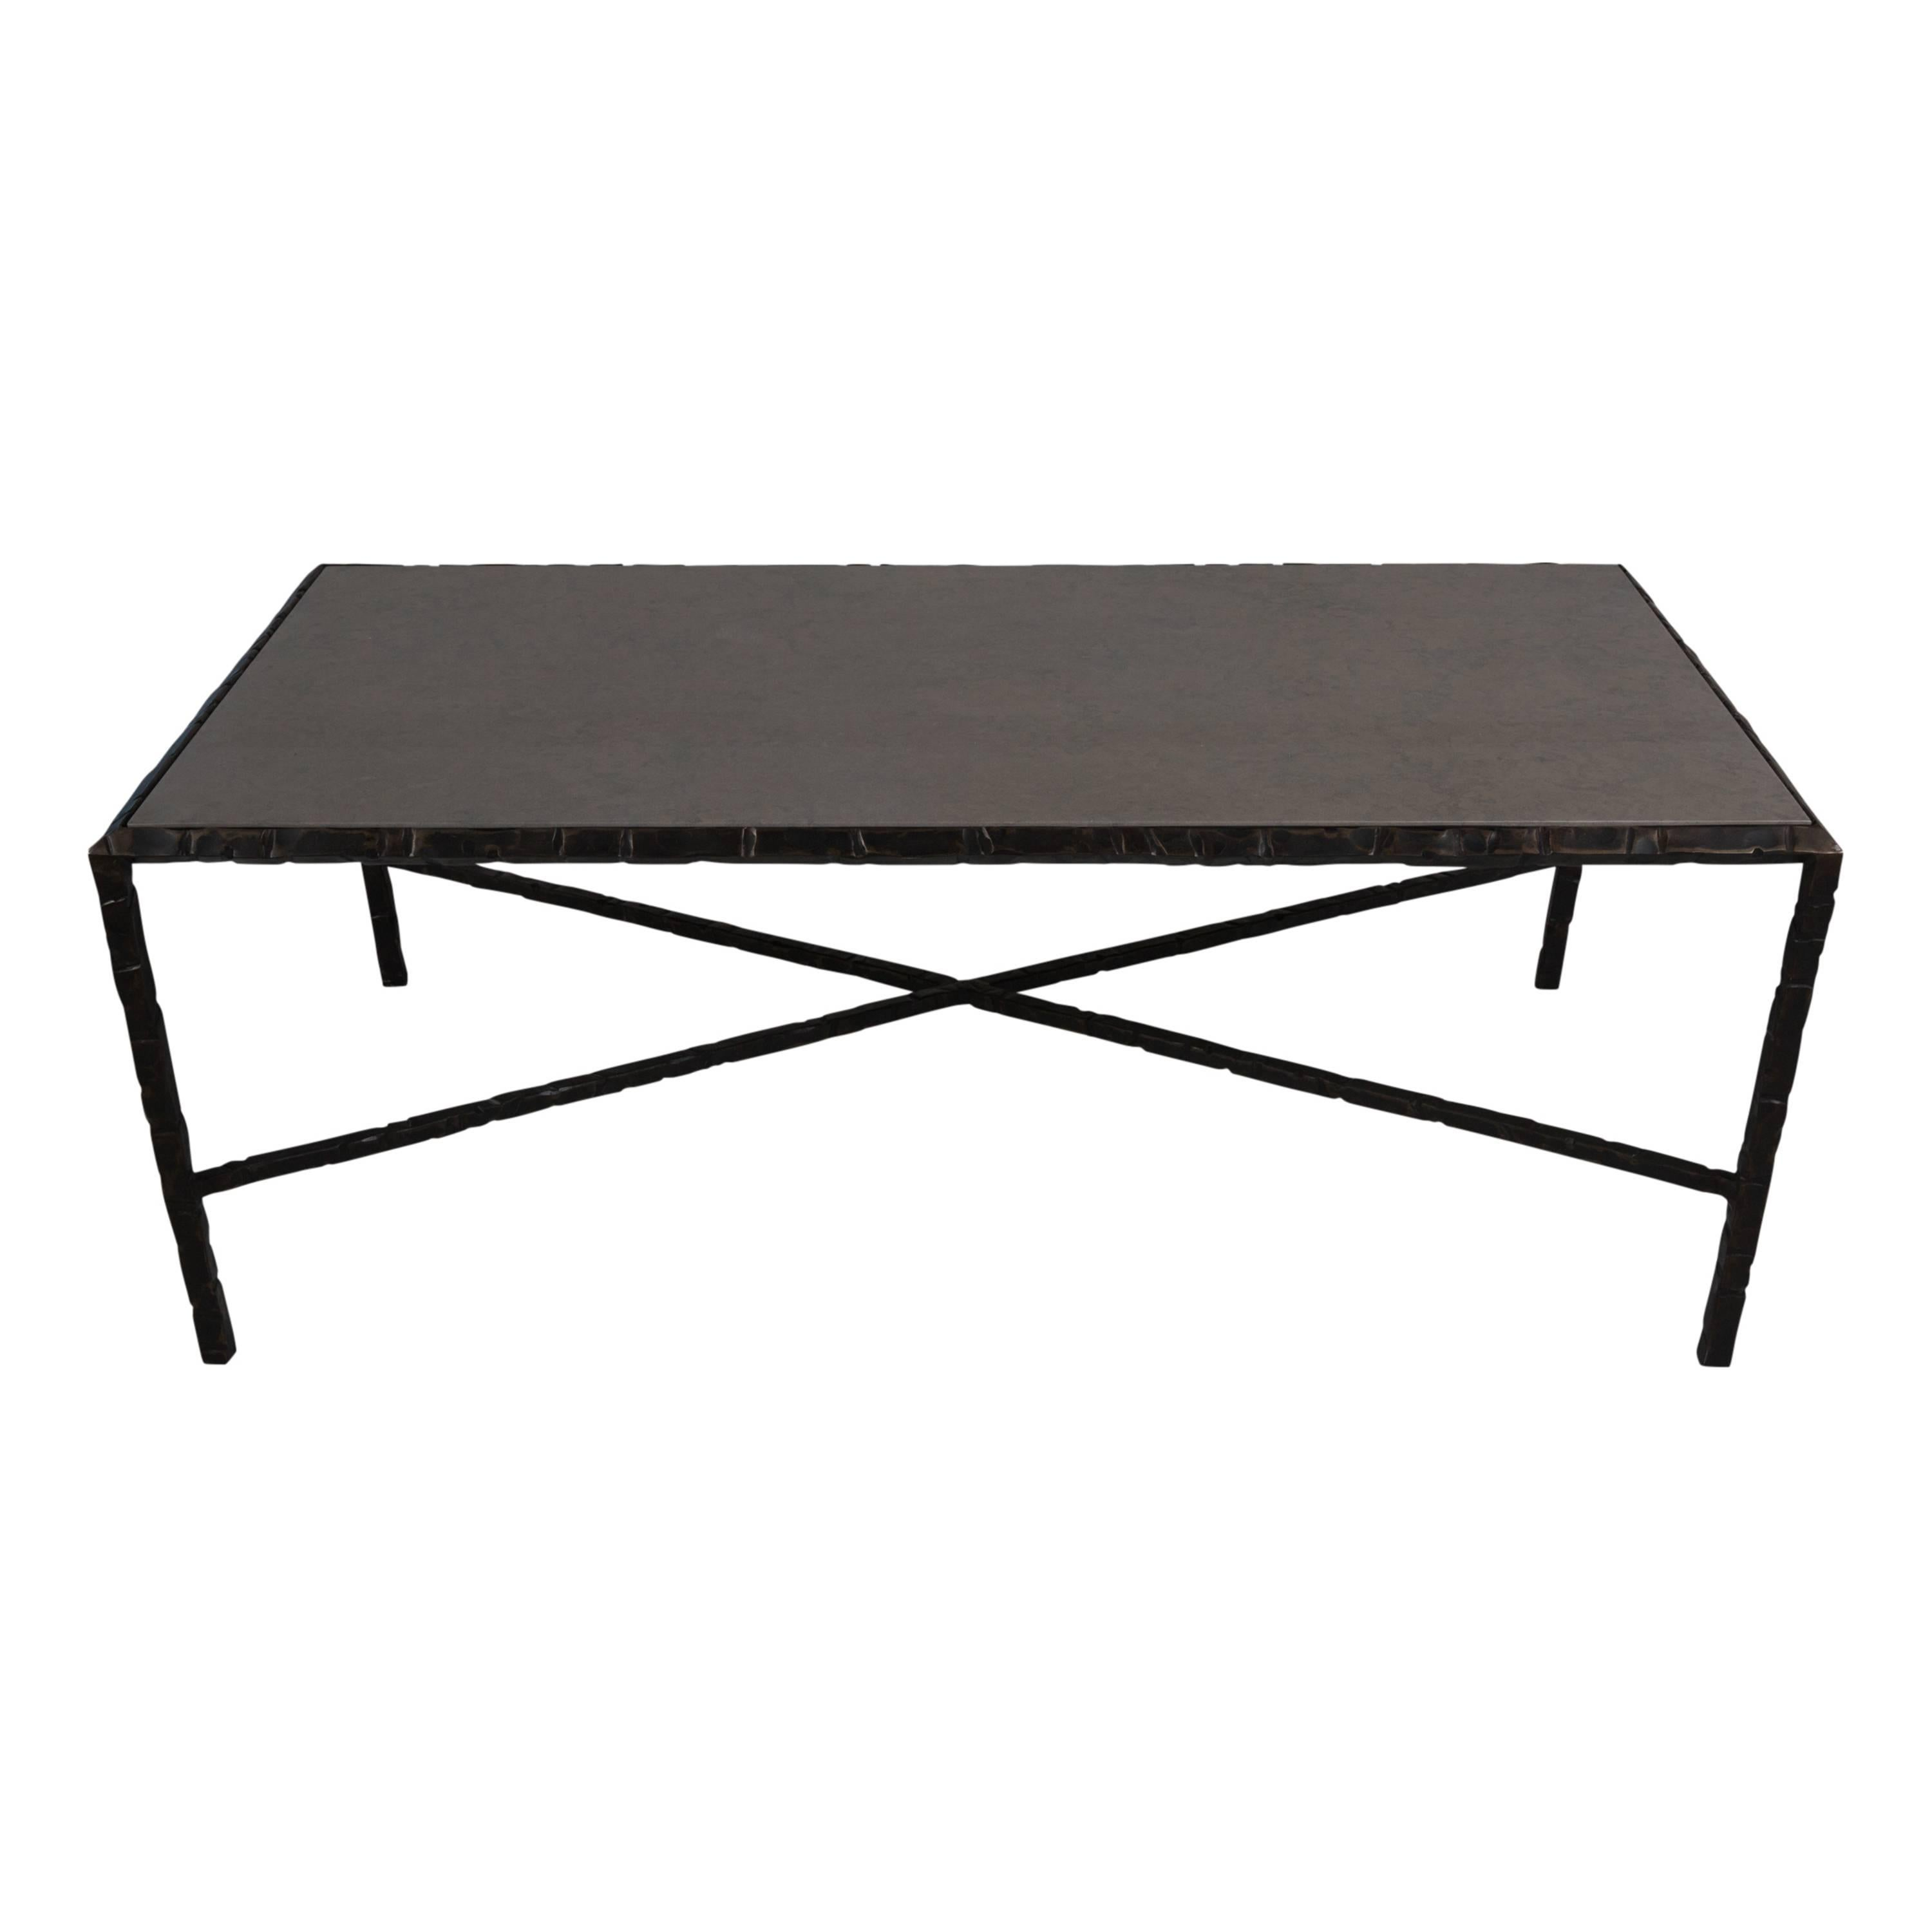 Hammered Steel Coffee Table, Bronze Patina For Sale